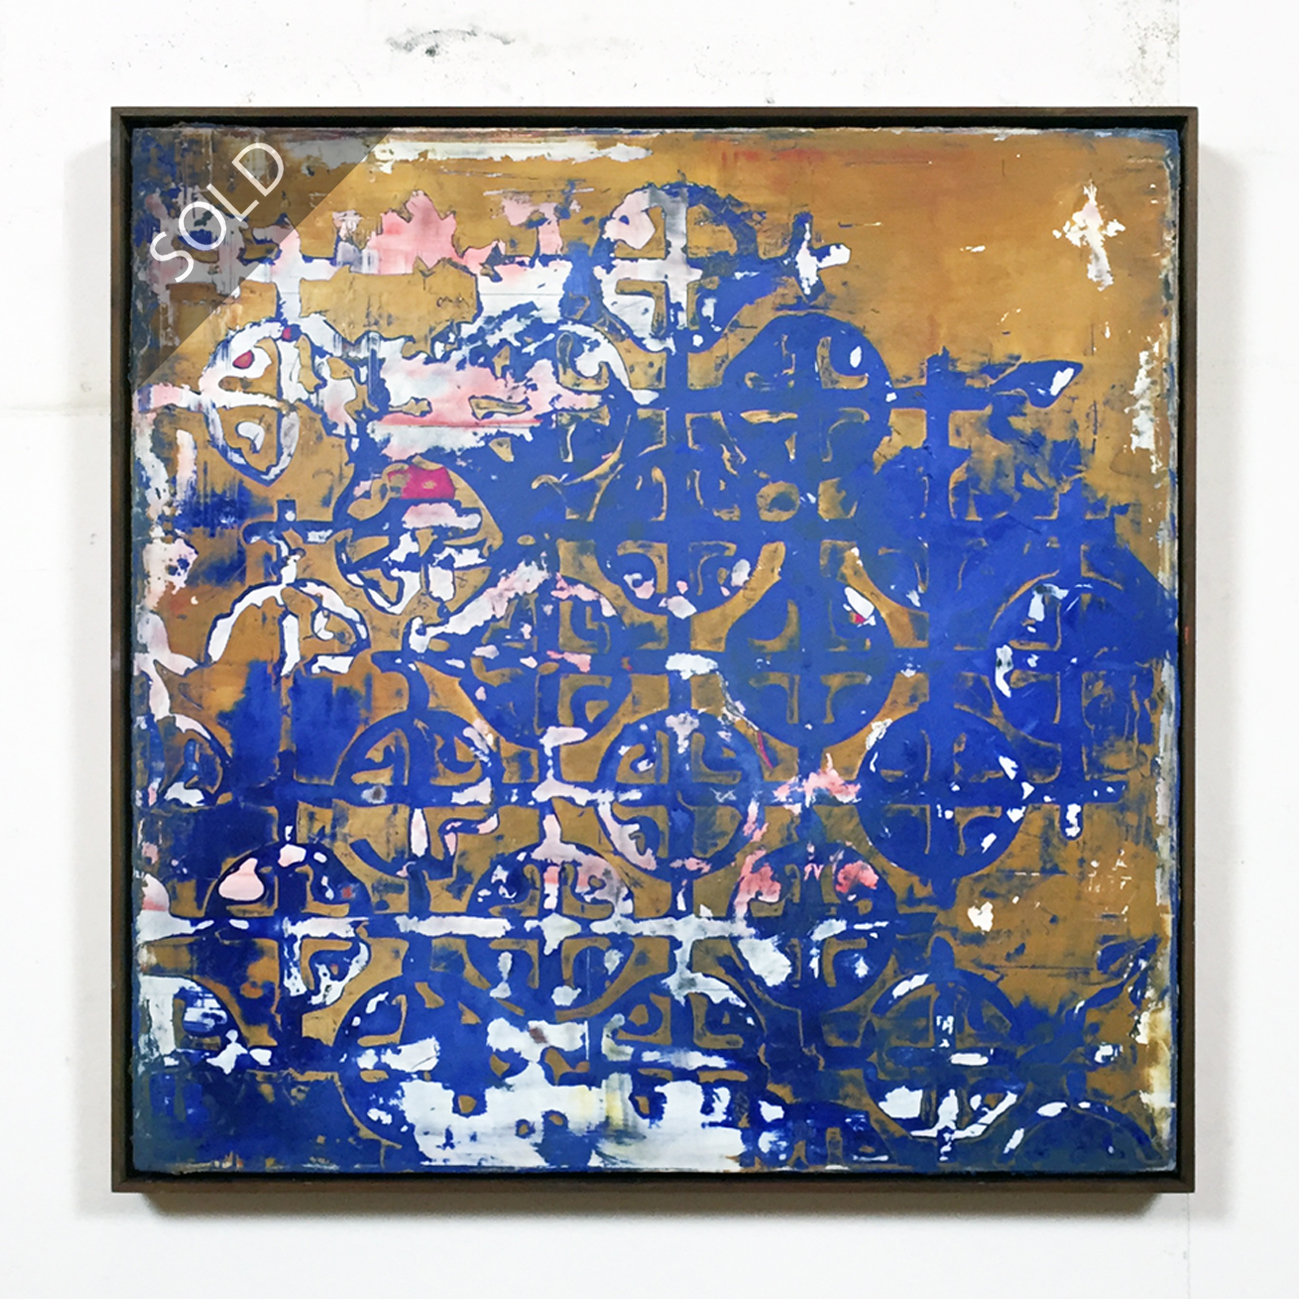 martin lechner carré #00710616 - oil on canvas on panel 60 x 60 x 4 cm (sold)